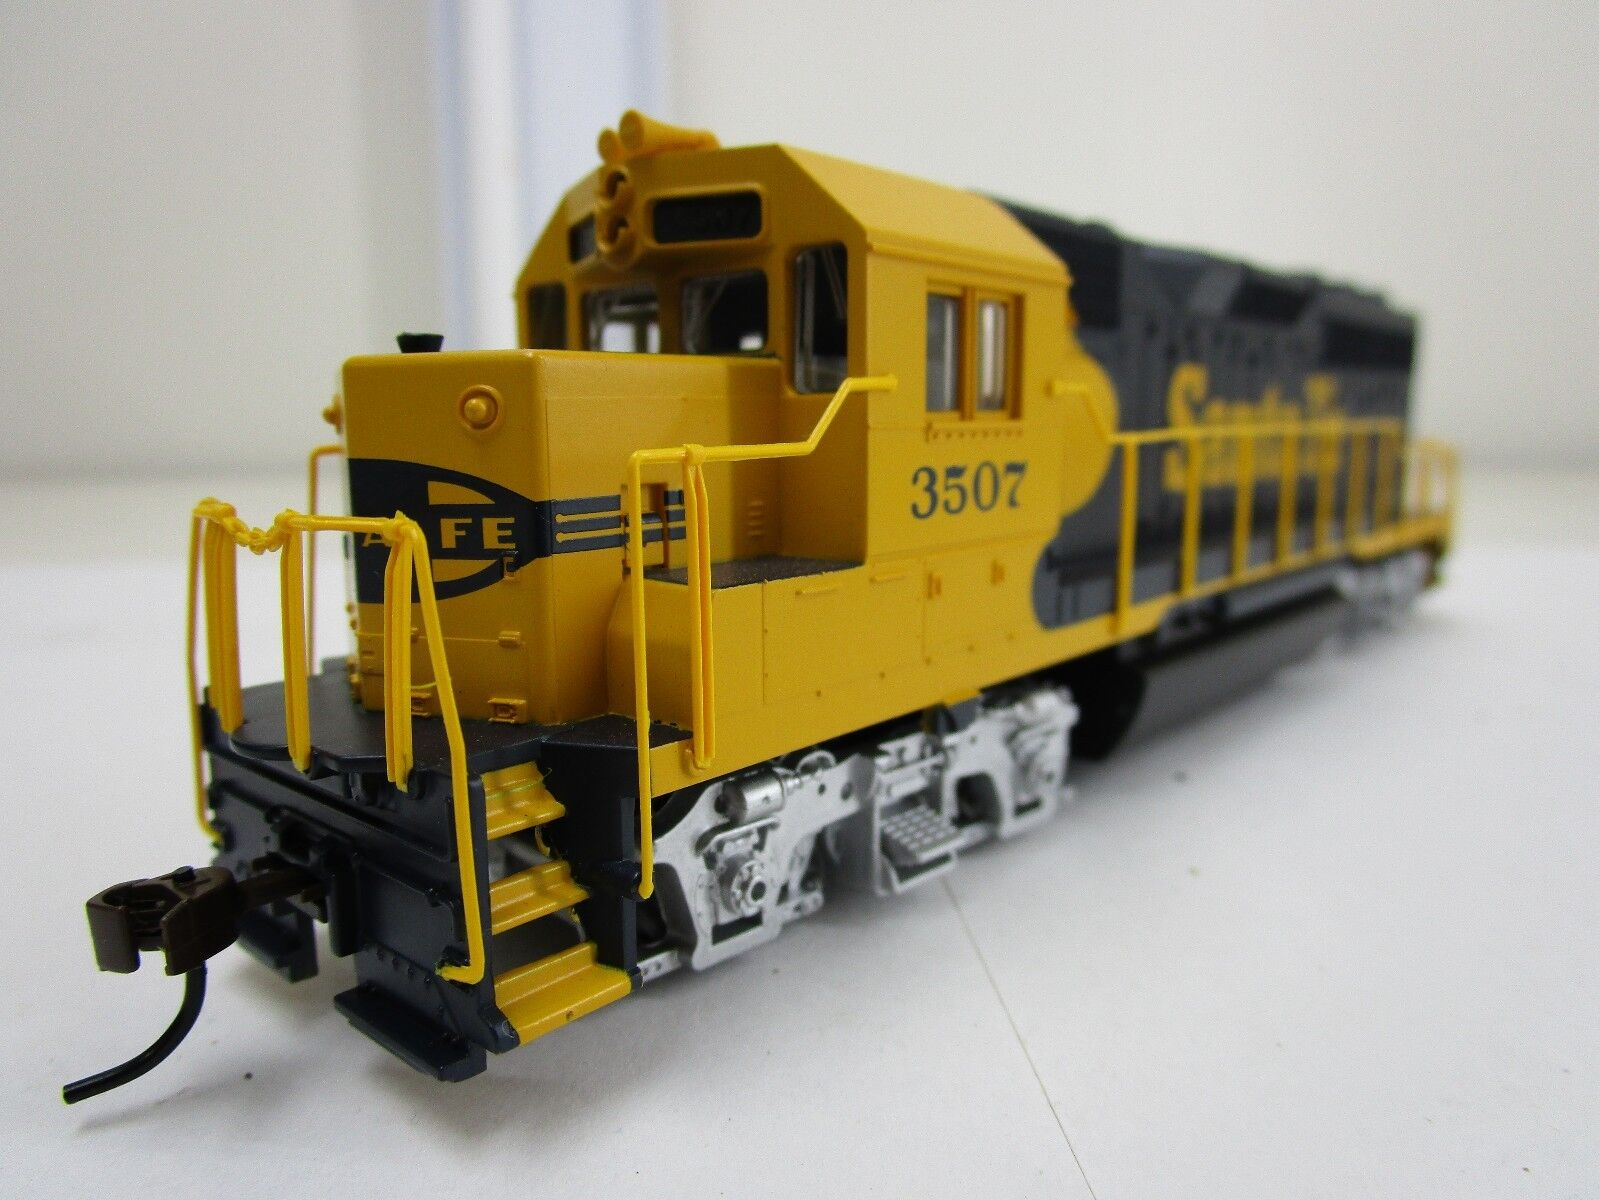 Vintage Bachmann Ho Scale Santa Fe Emd Ft Diesel Train Engine Locomotive 0680 For Sale Online Ebay